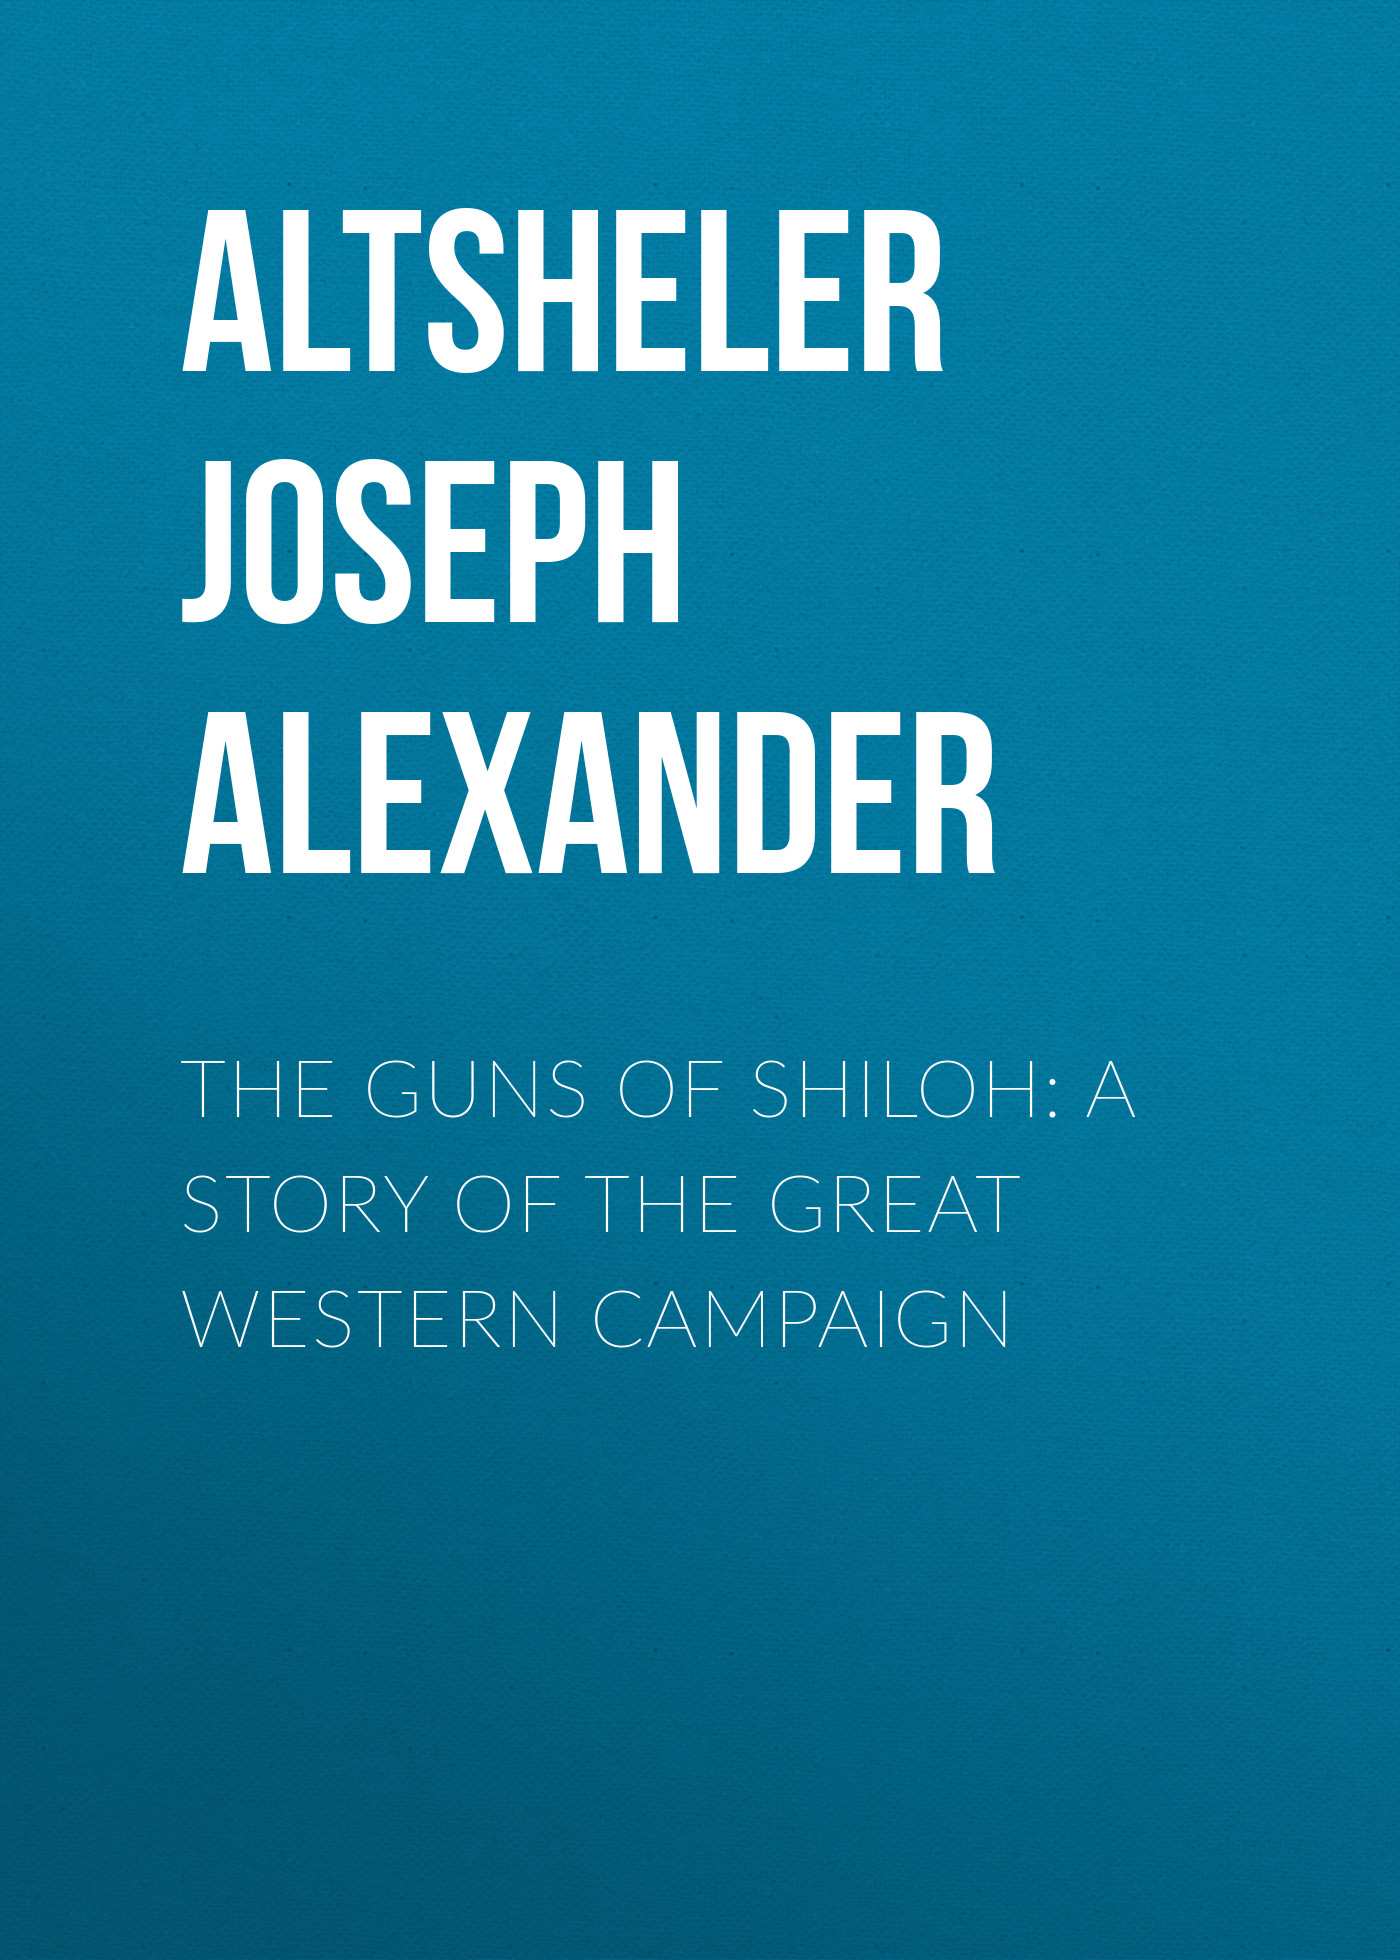 Altsheler Joseph Alexander The Guns of Shiloh: A Story of the Great Western Campaign